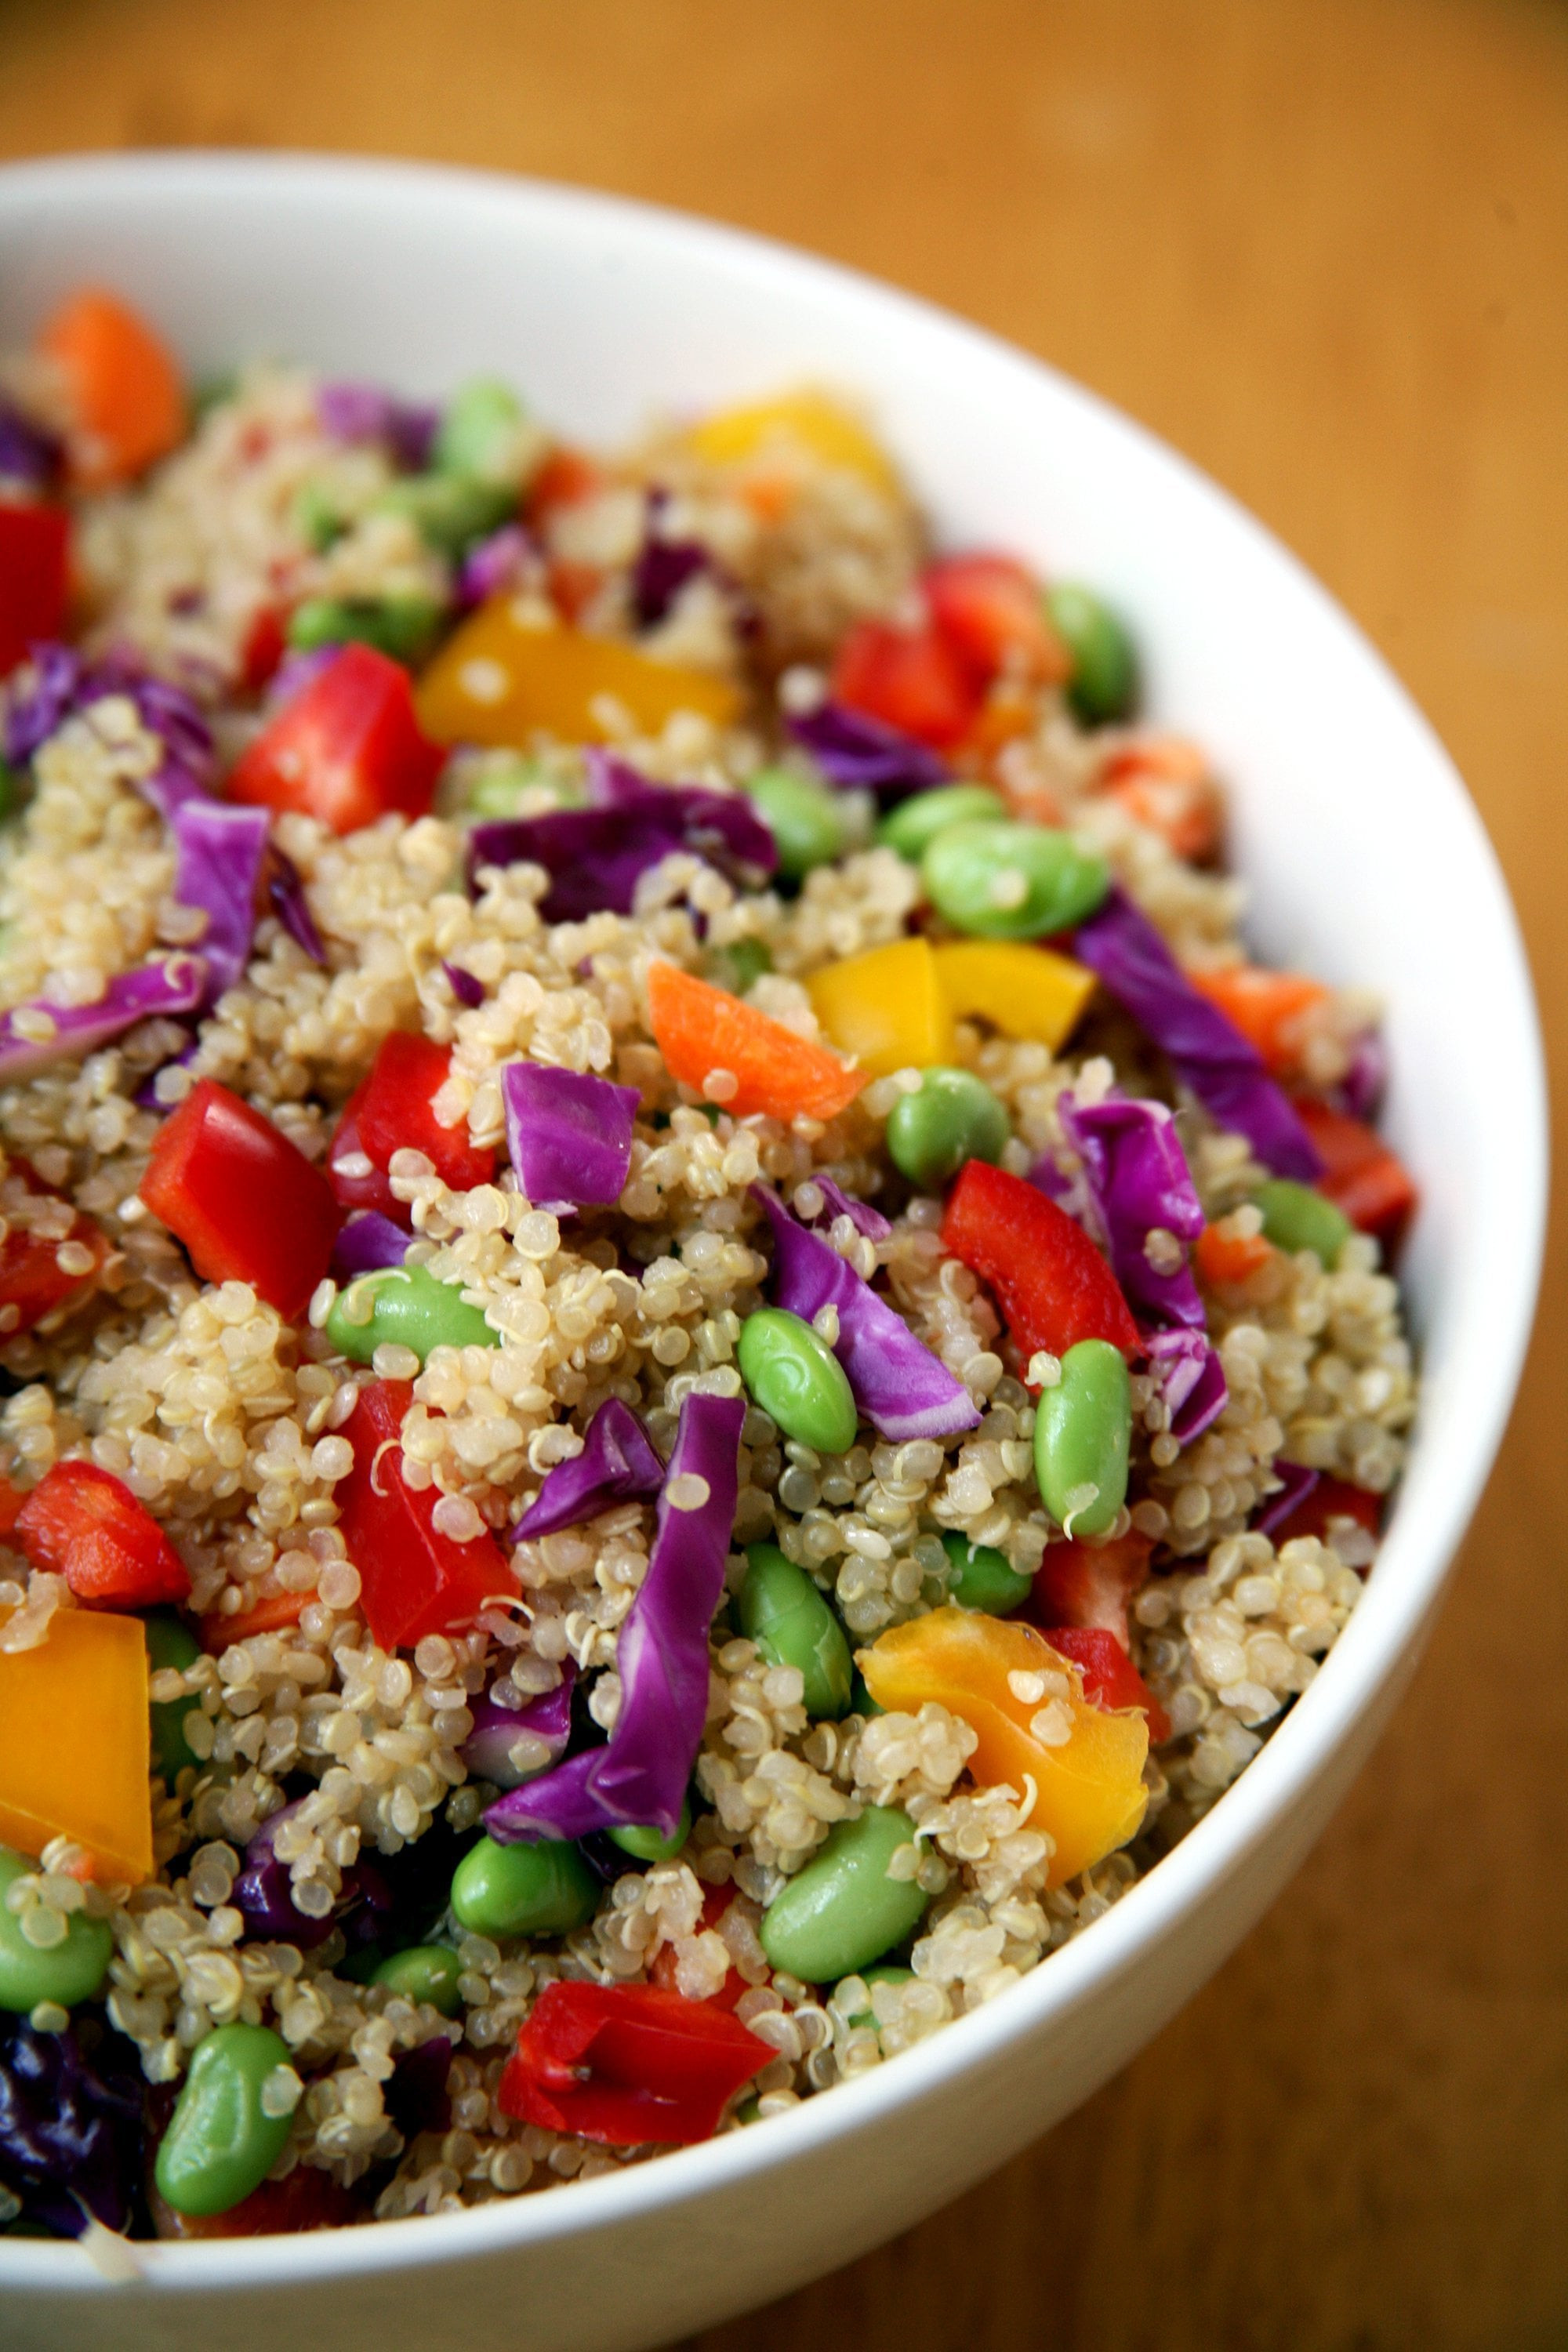 Brown Rice Or Quinoa For Weight Loss  Is Quinoa Healthier Than Brown Rice